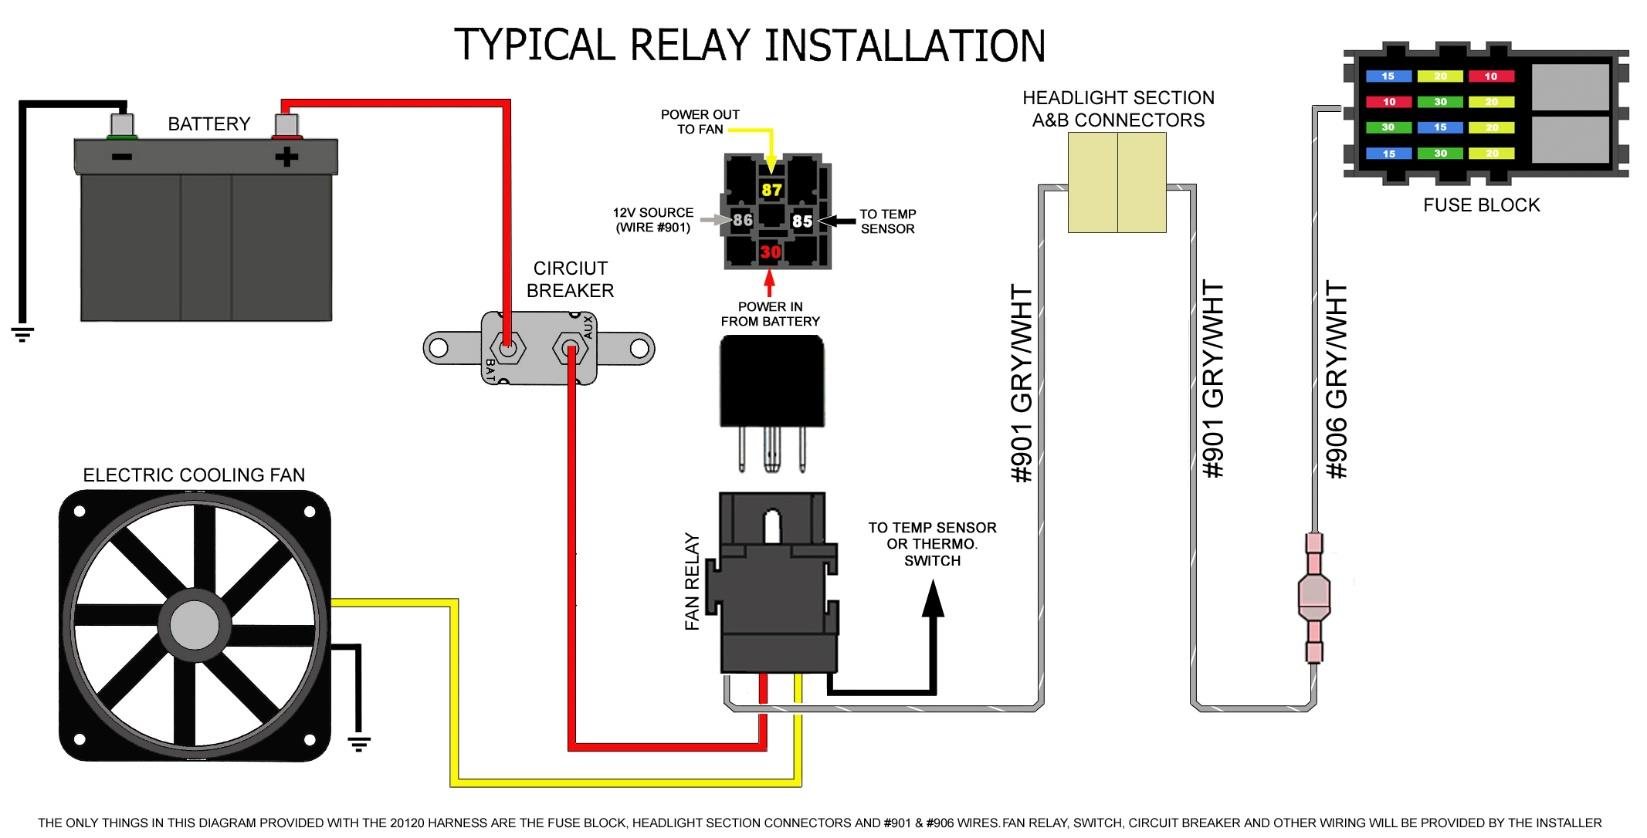 Wire Harness Installation Instructions - PDF